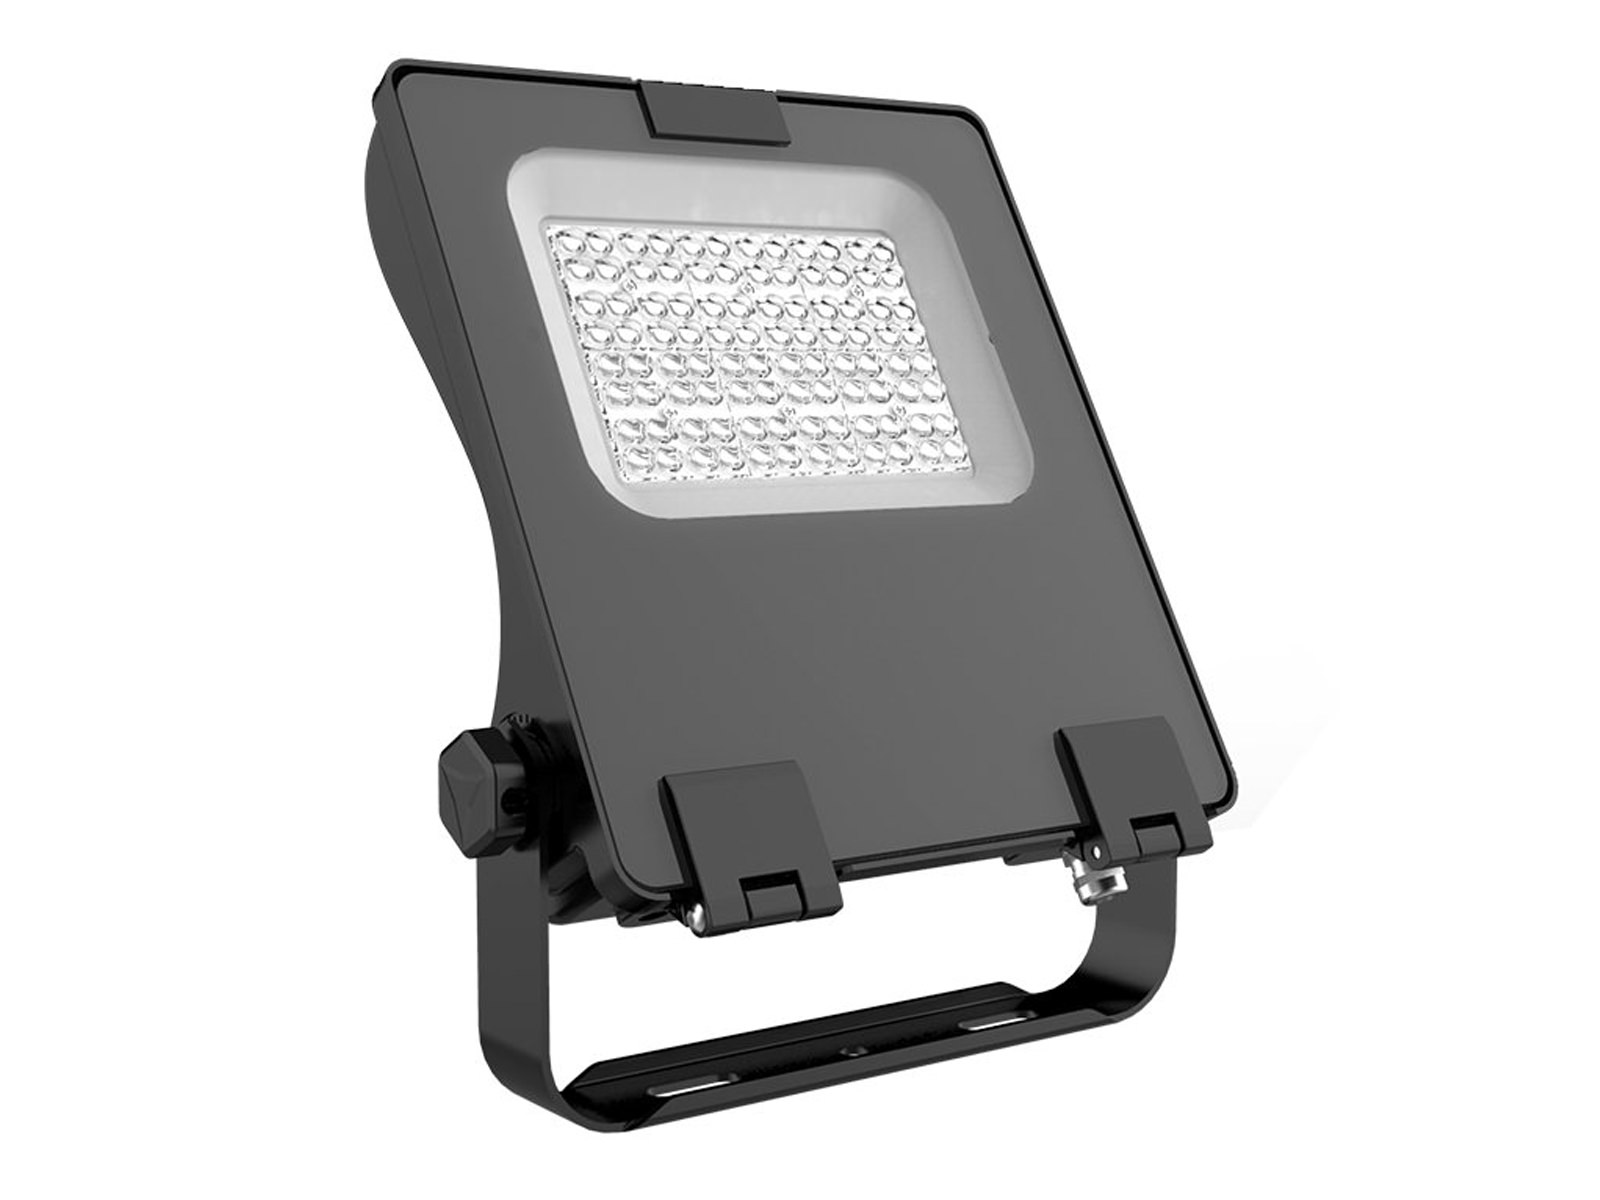 HiSpot LED Flood Light